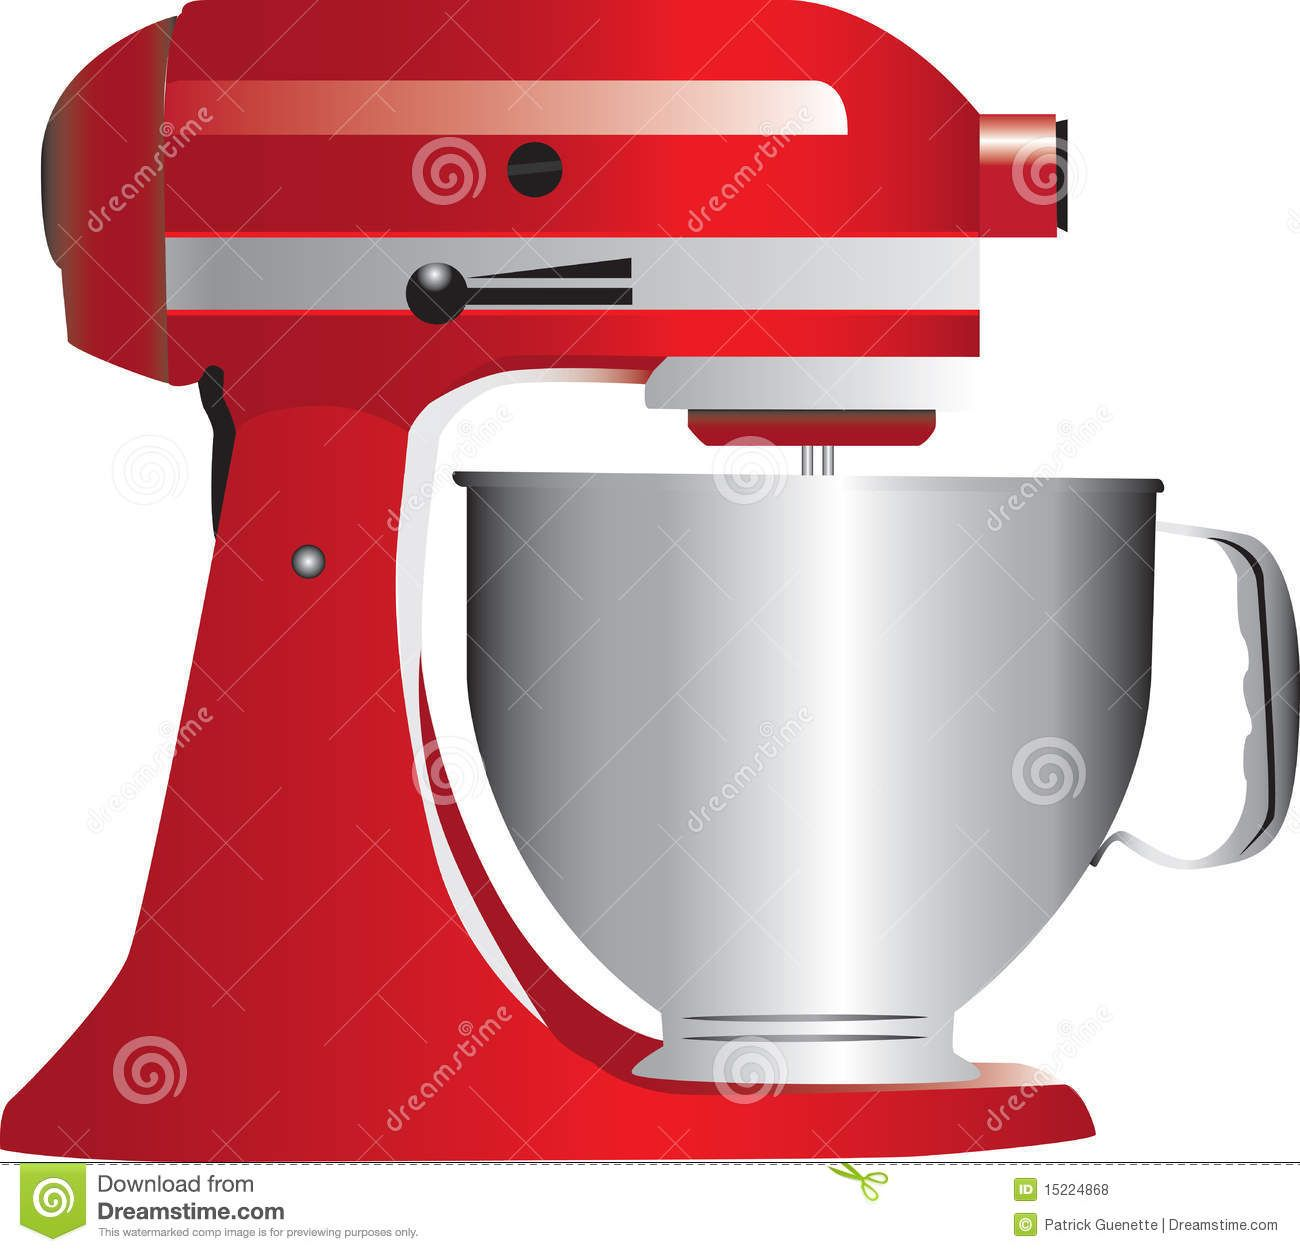 Gallery For > KitchenAid Mixer Clipart.